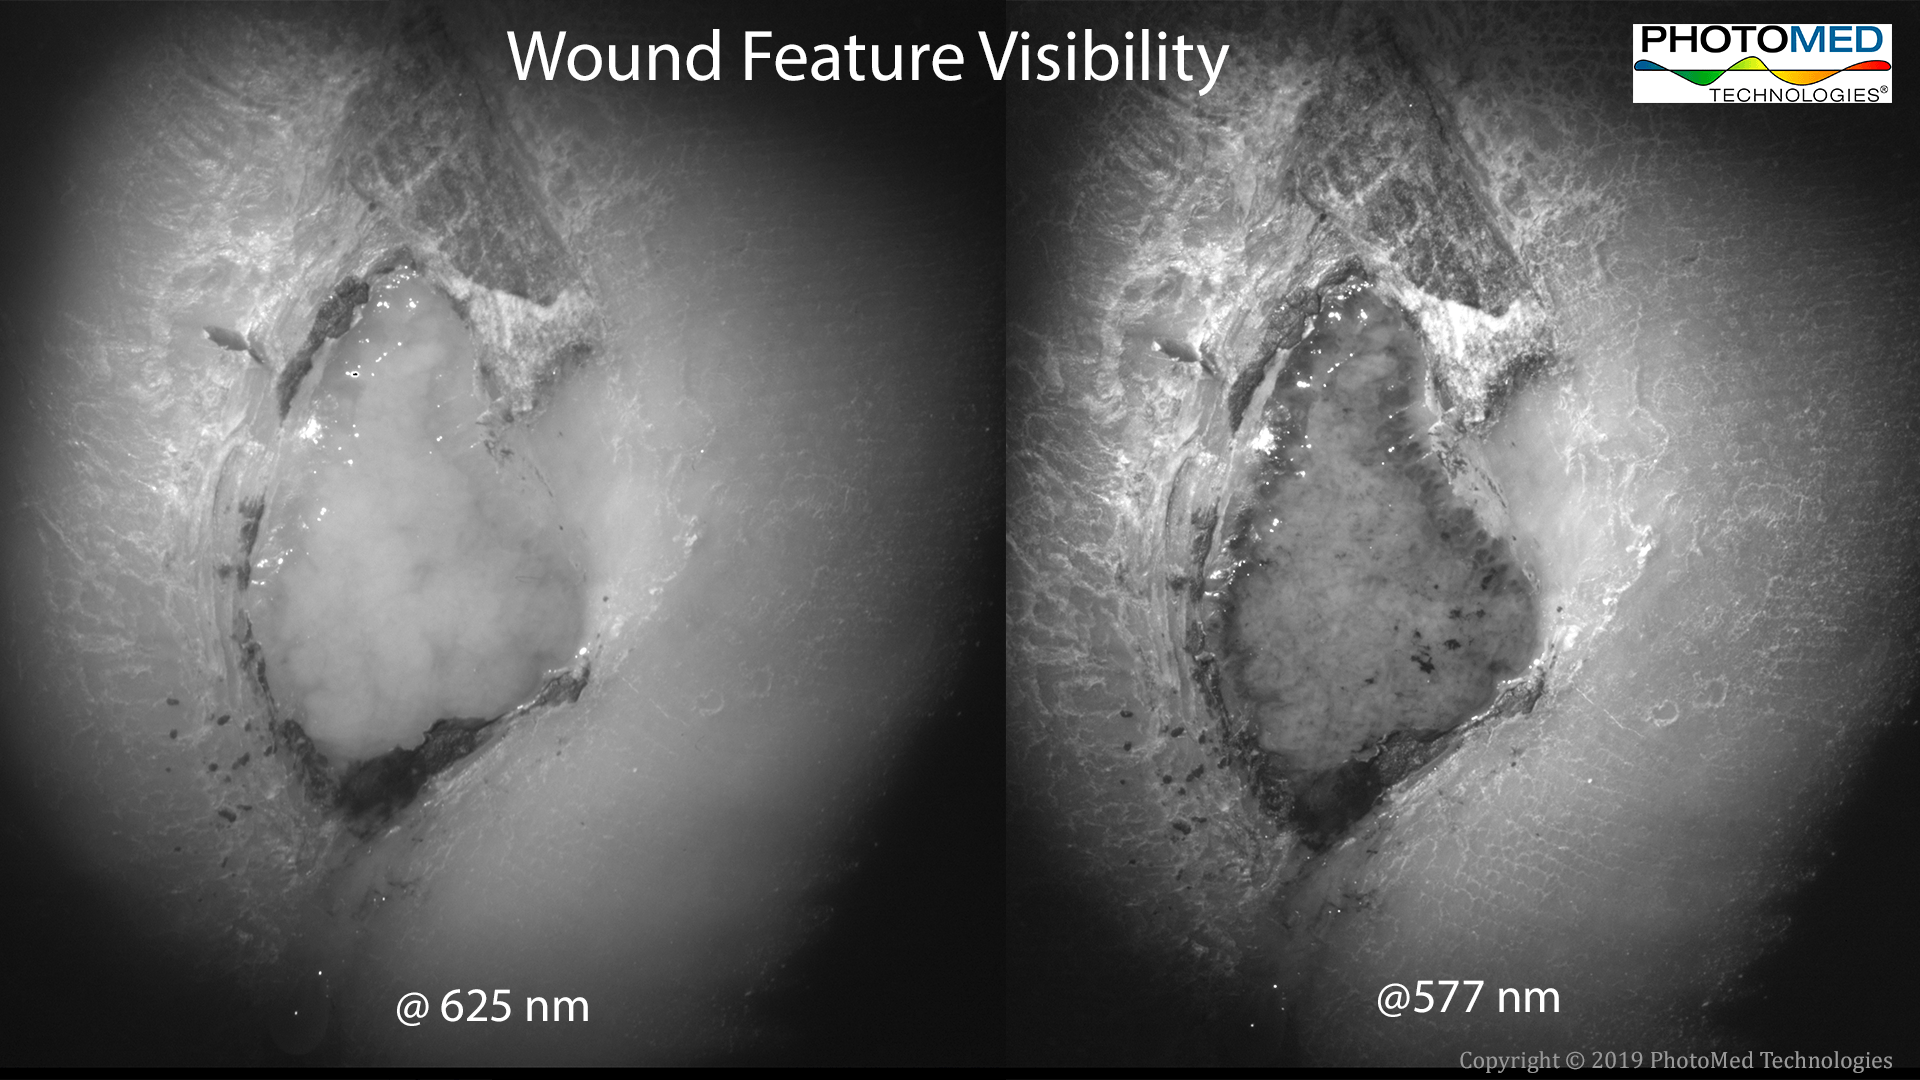 Wound Feature Visibility 2019-05-10.png